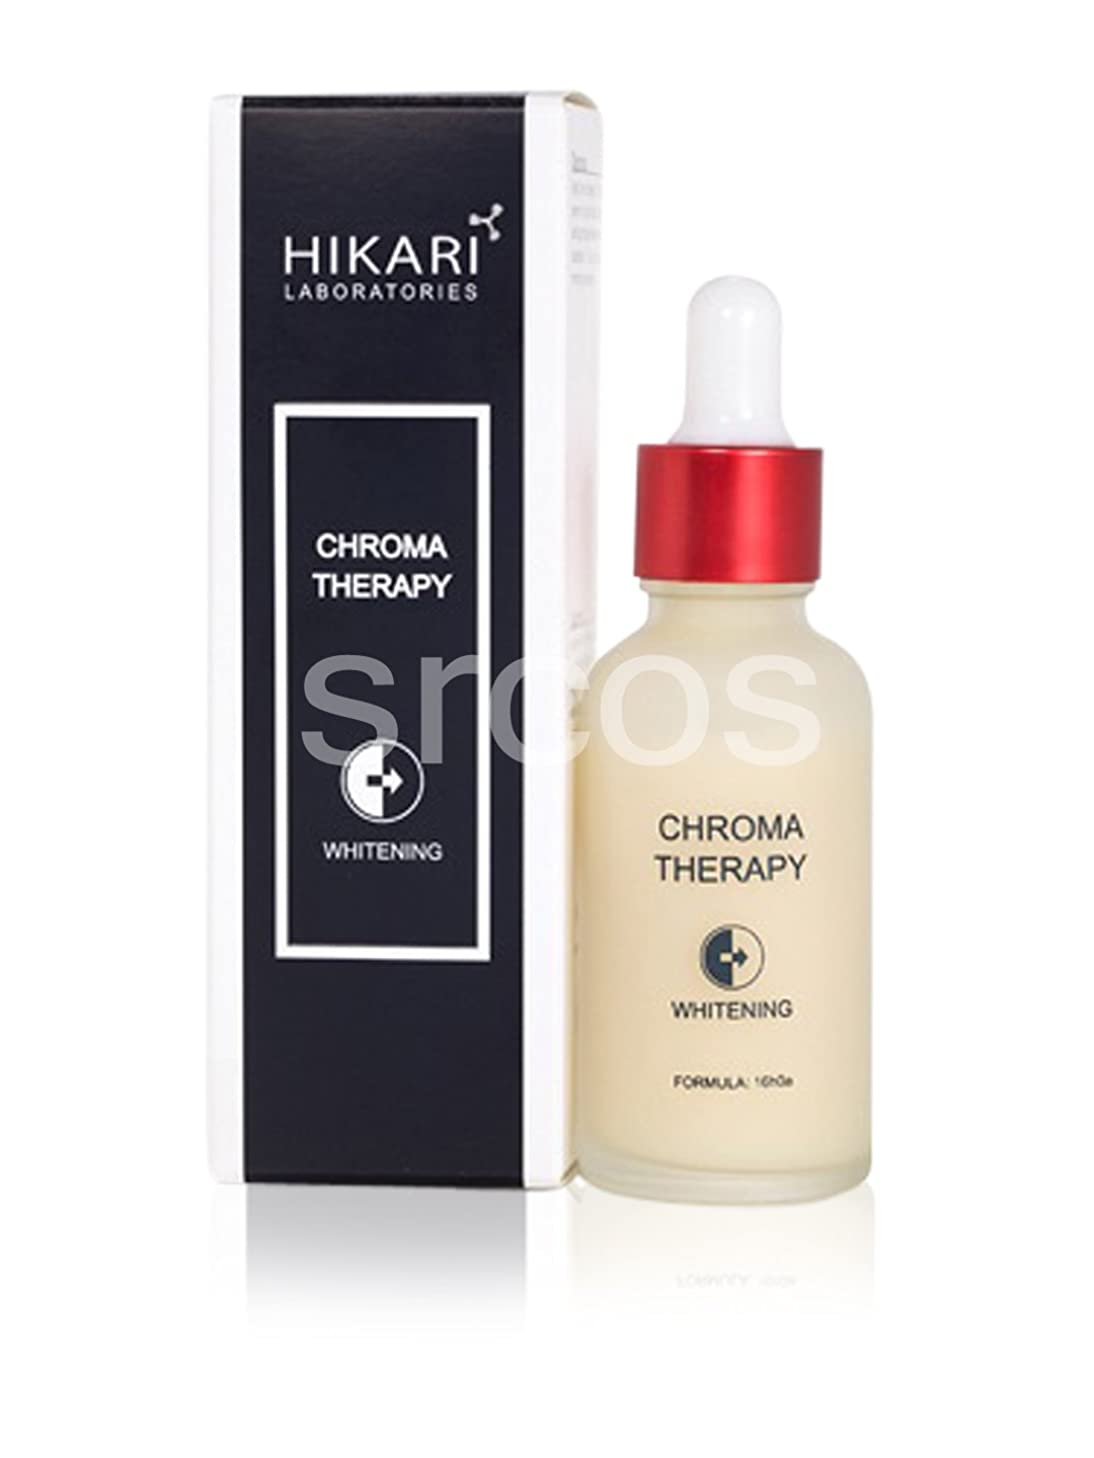 パス累計観光Hikari Whitening Chroma Therapy serum 30ml